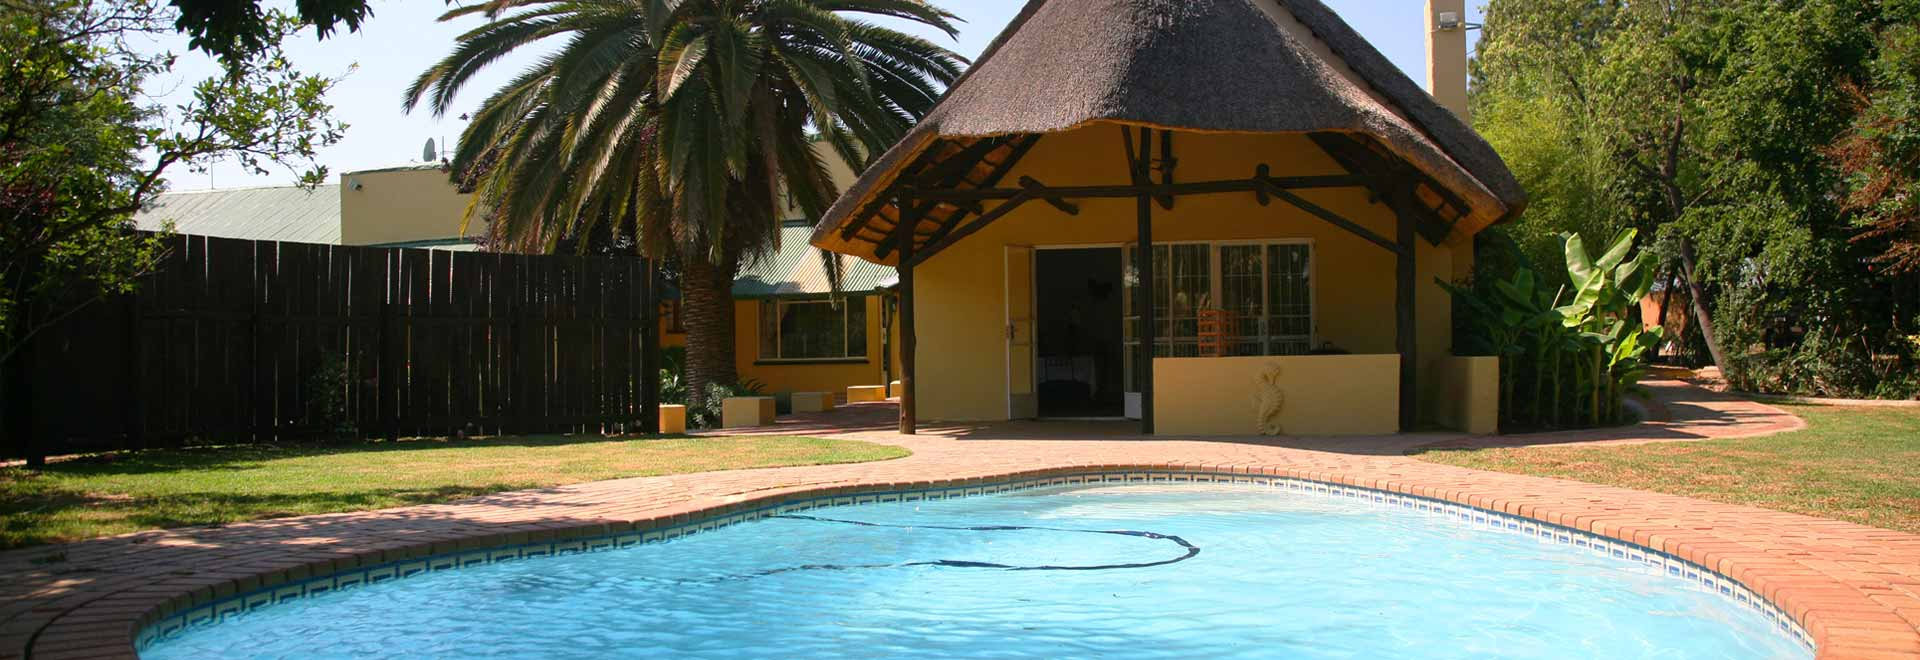 Lanseria Lodge accommodation and pool